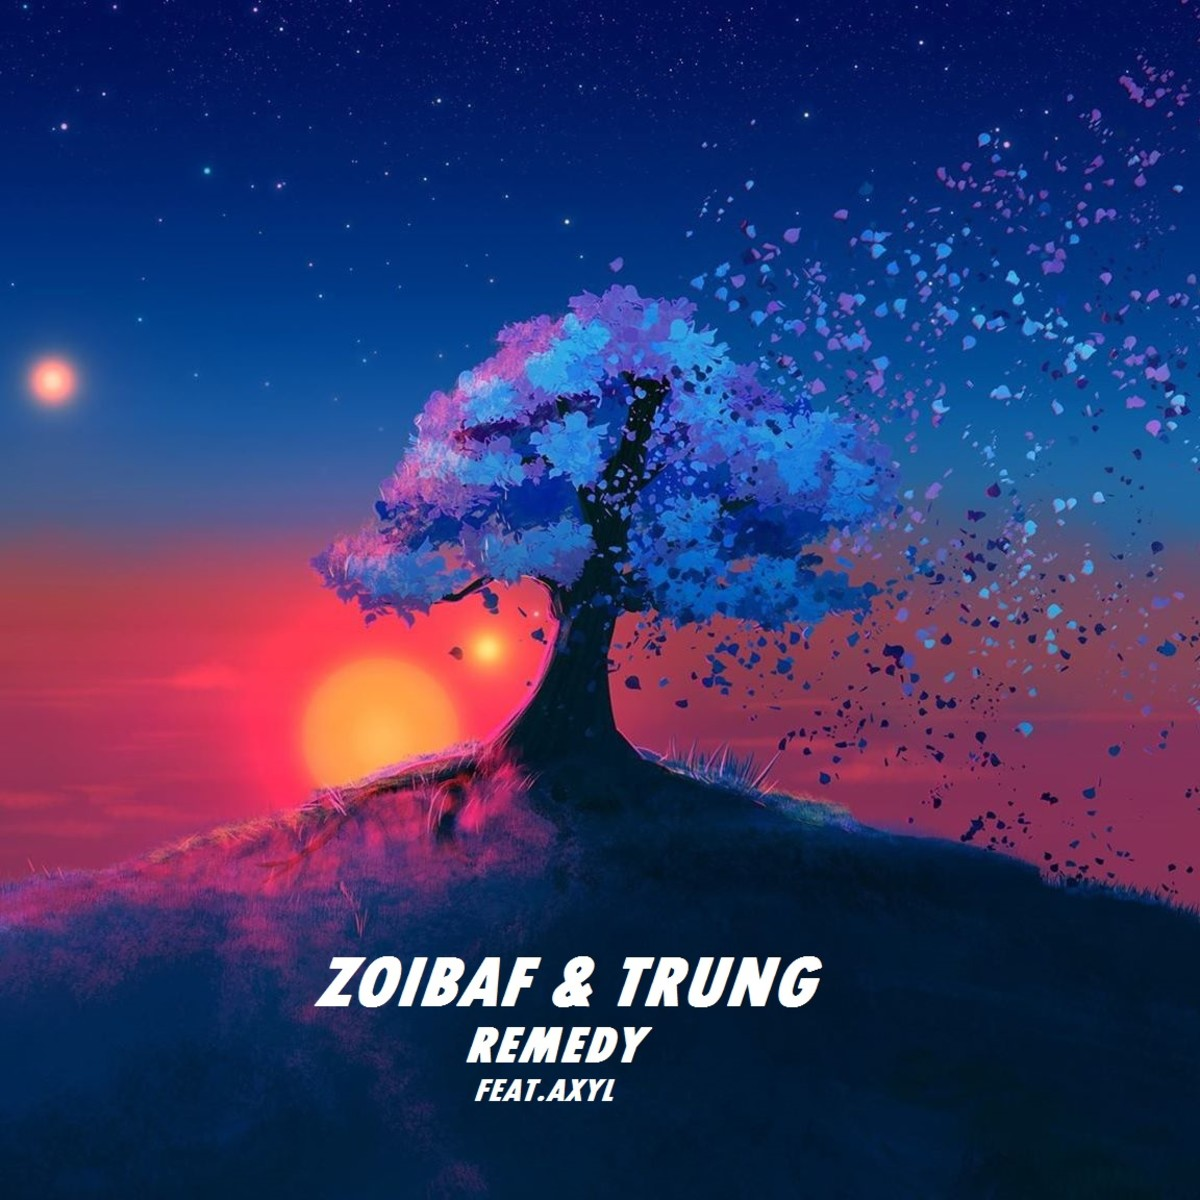 ZOIBAF & TRUNG - Remedy (feat. AXYL)